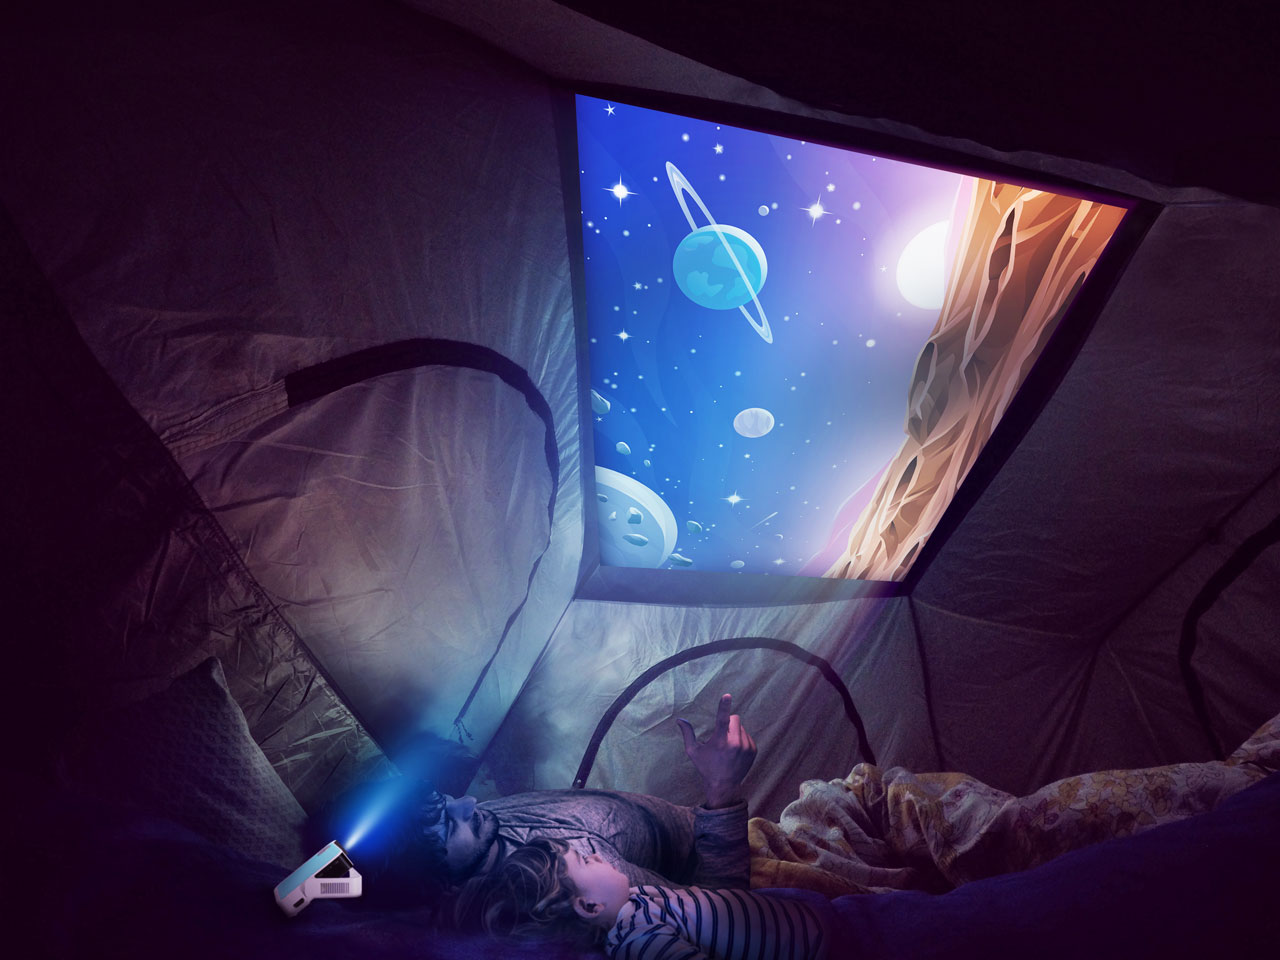 Viewsonic LED projector dream